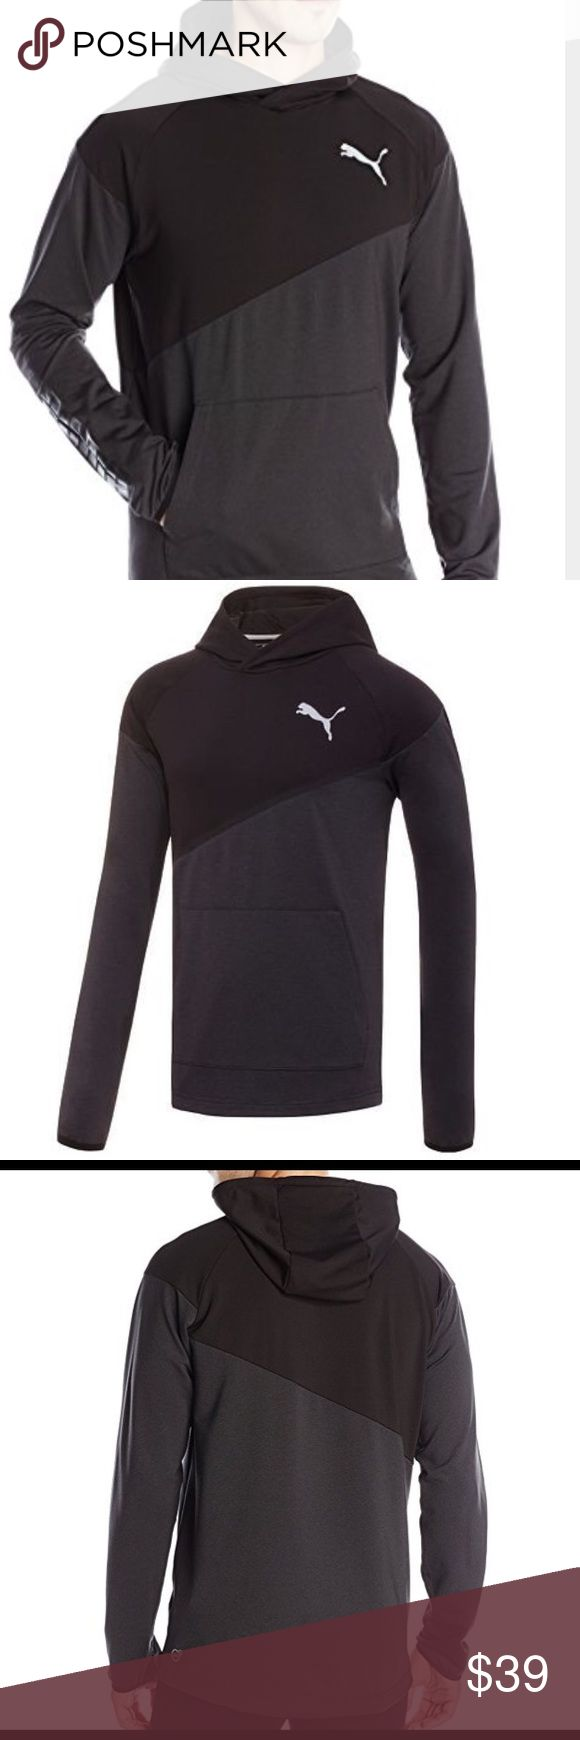 Puma Pullover Hoodie Look fresh and cool in this men's PUMA pullover hoodie and complete your workout style.  PRODUCT FEATURES  Reflective PUMA logo Dropped back hem 1-pocket Long sleeves Polyester, elastane Puma Shirts Sweatshirts & Hoodies